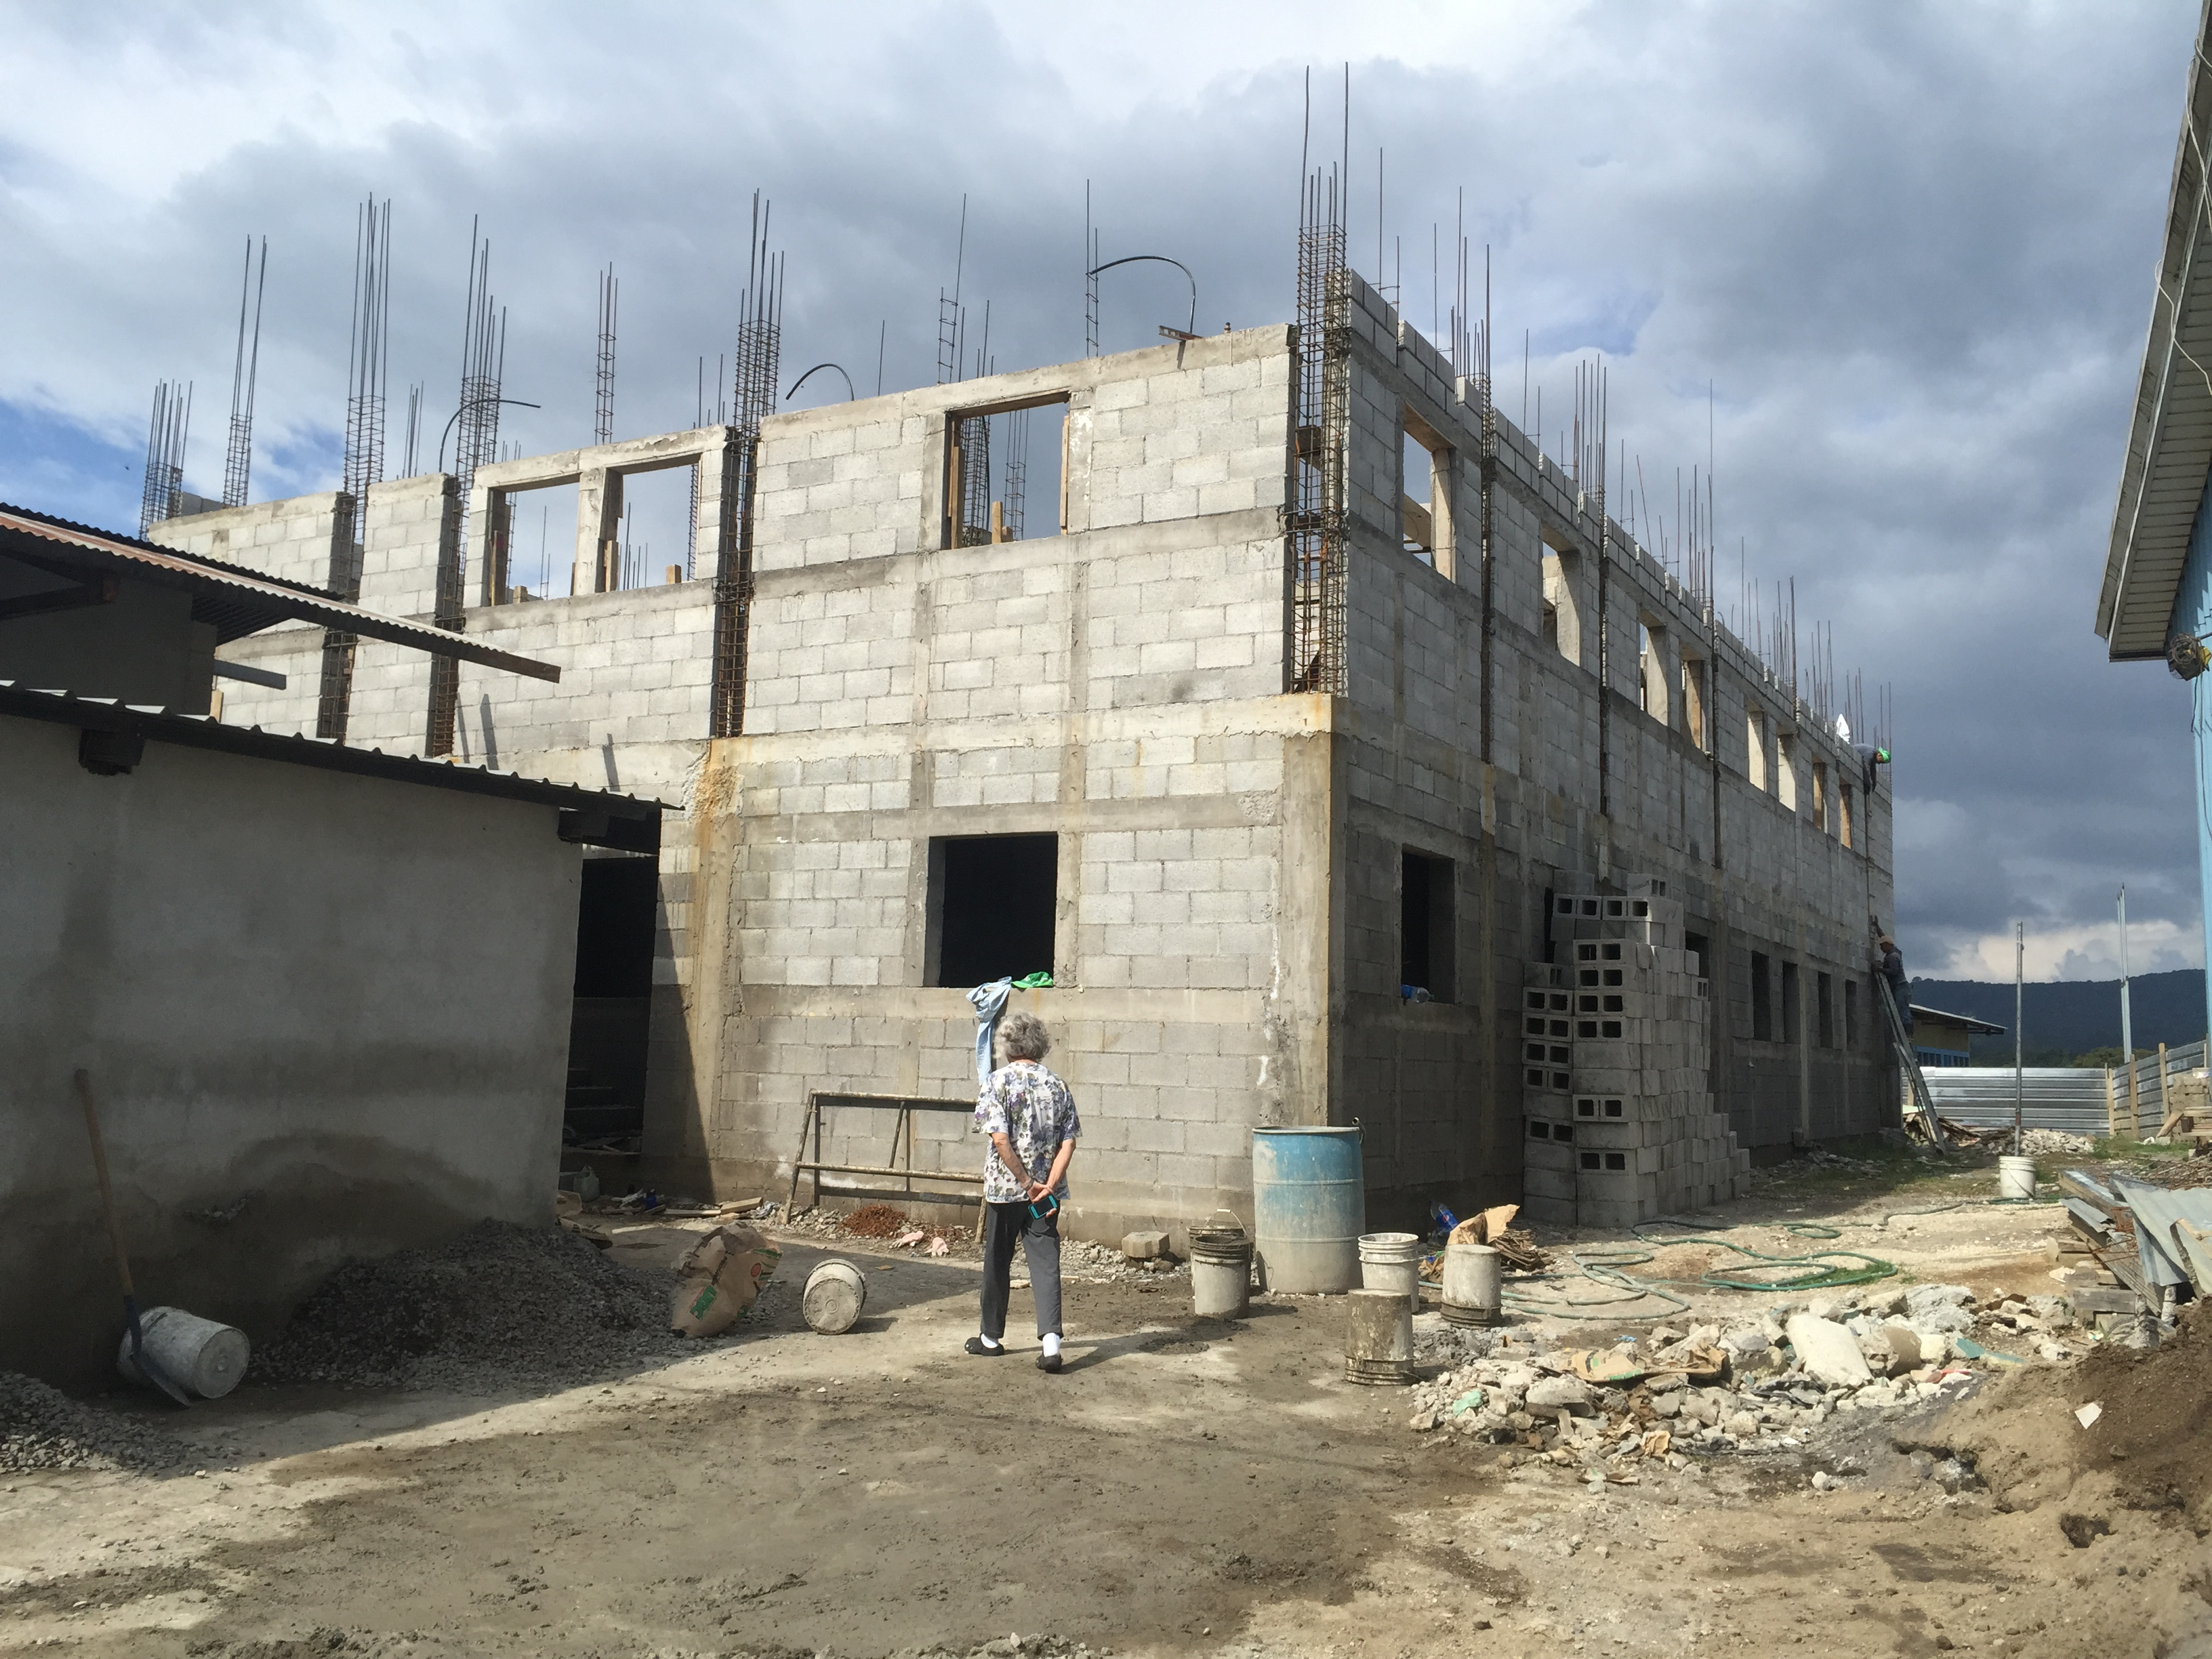 The dialysis care construction is progressing